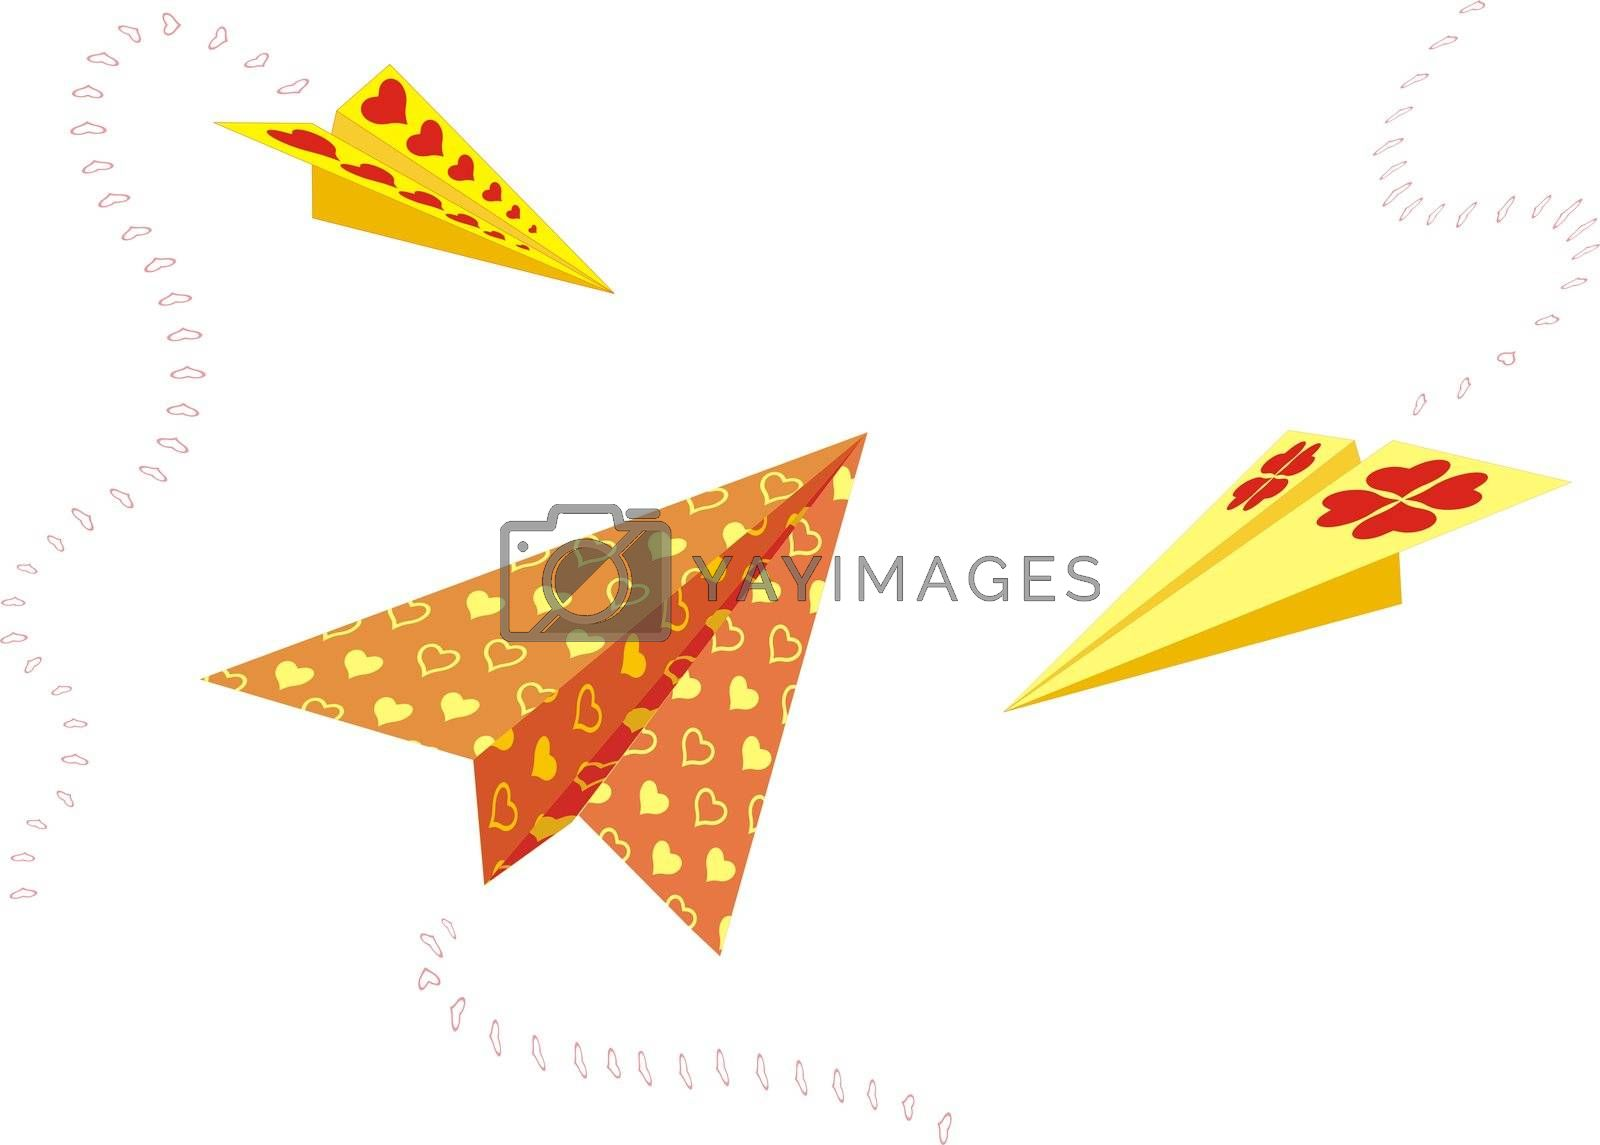 Paper planes sending greetings for valentines day, illustration